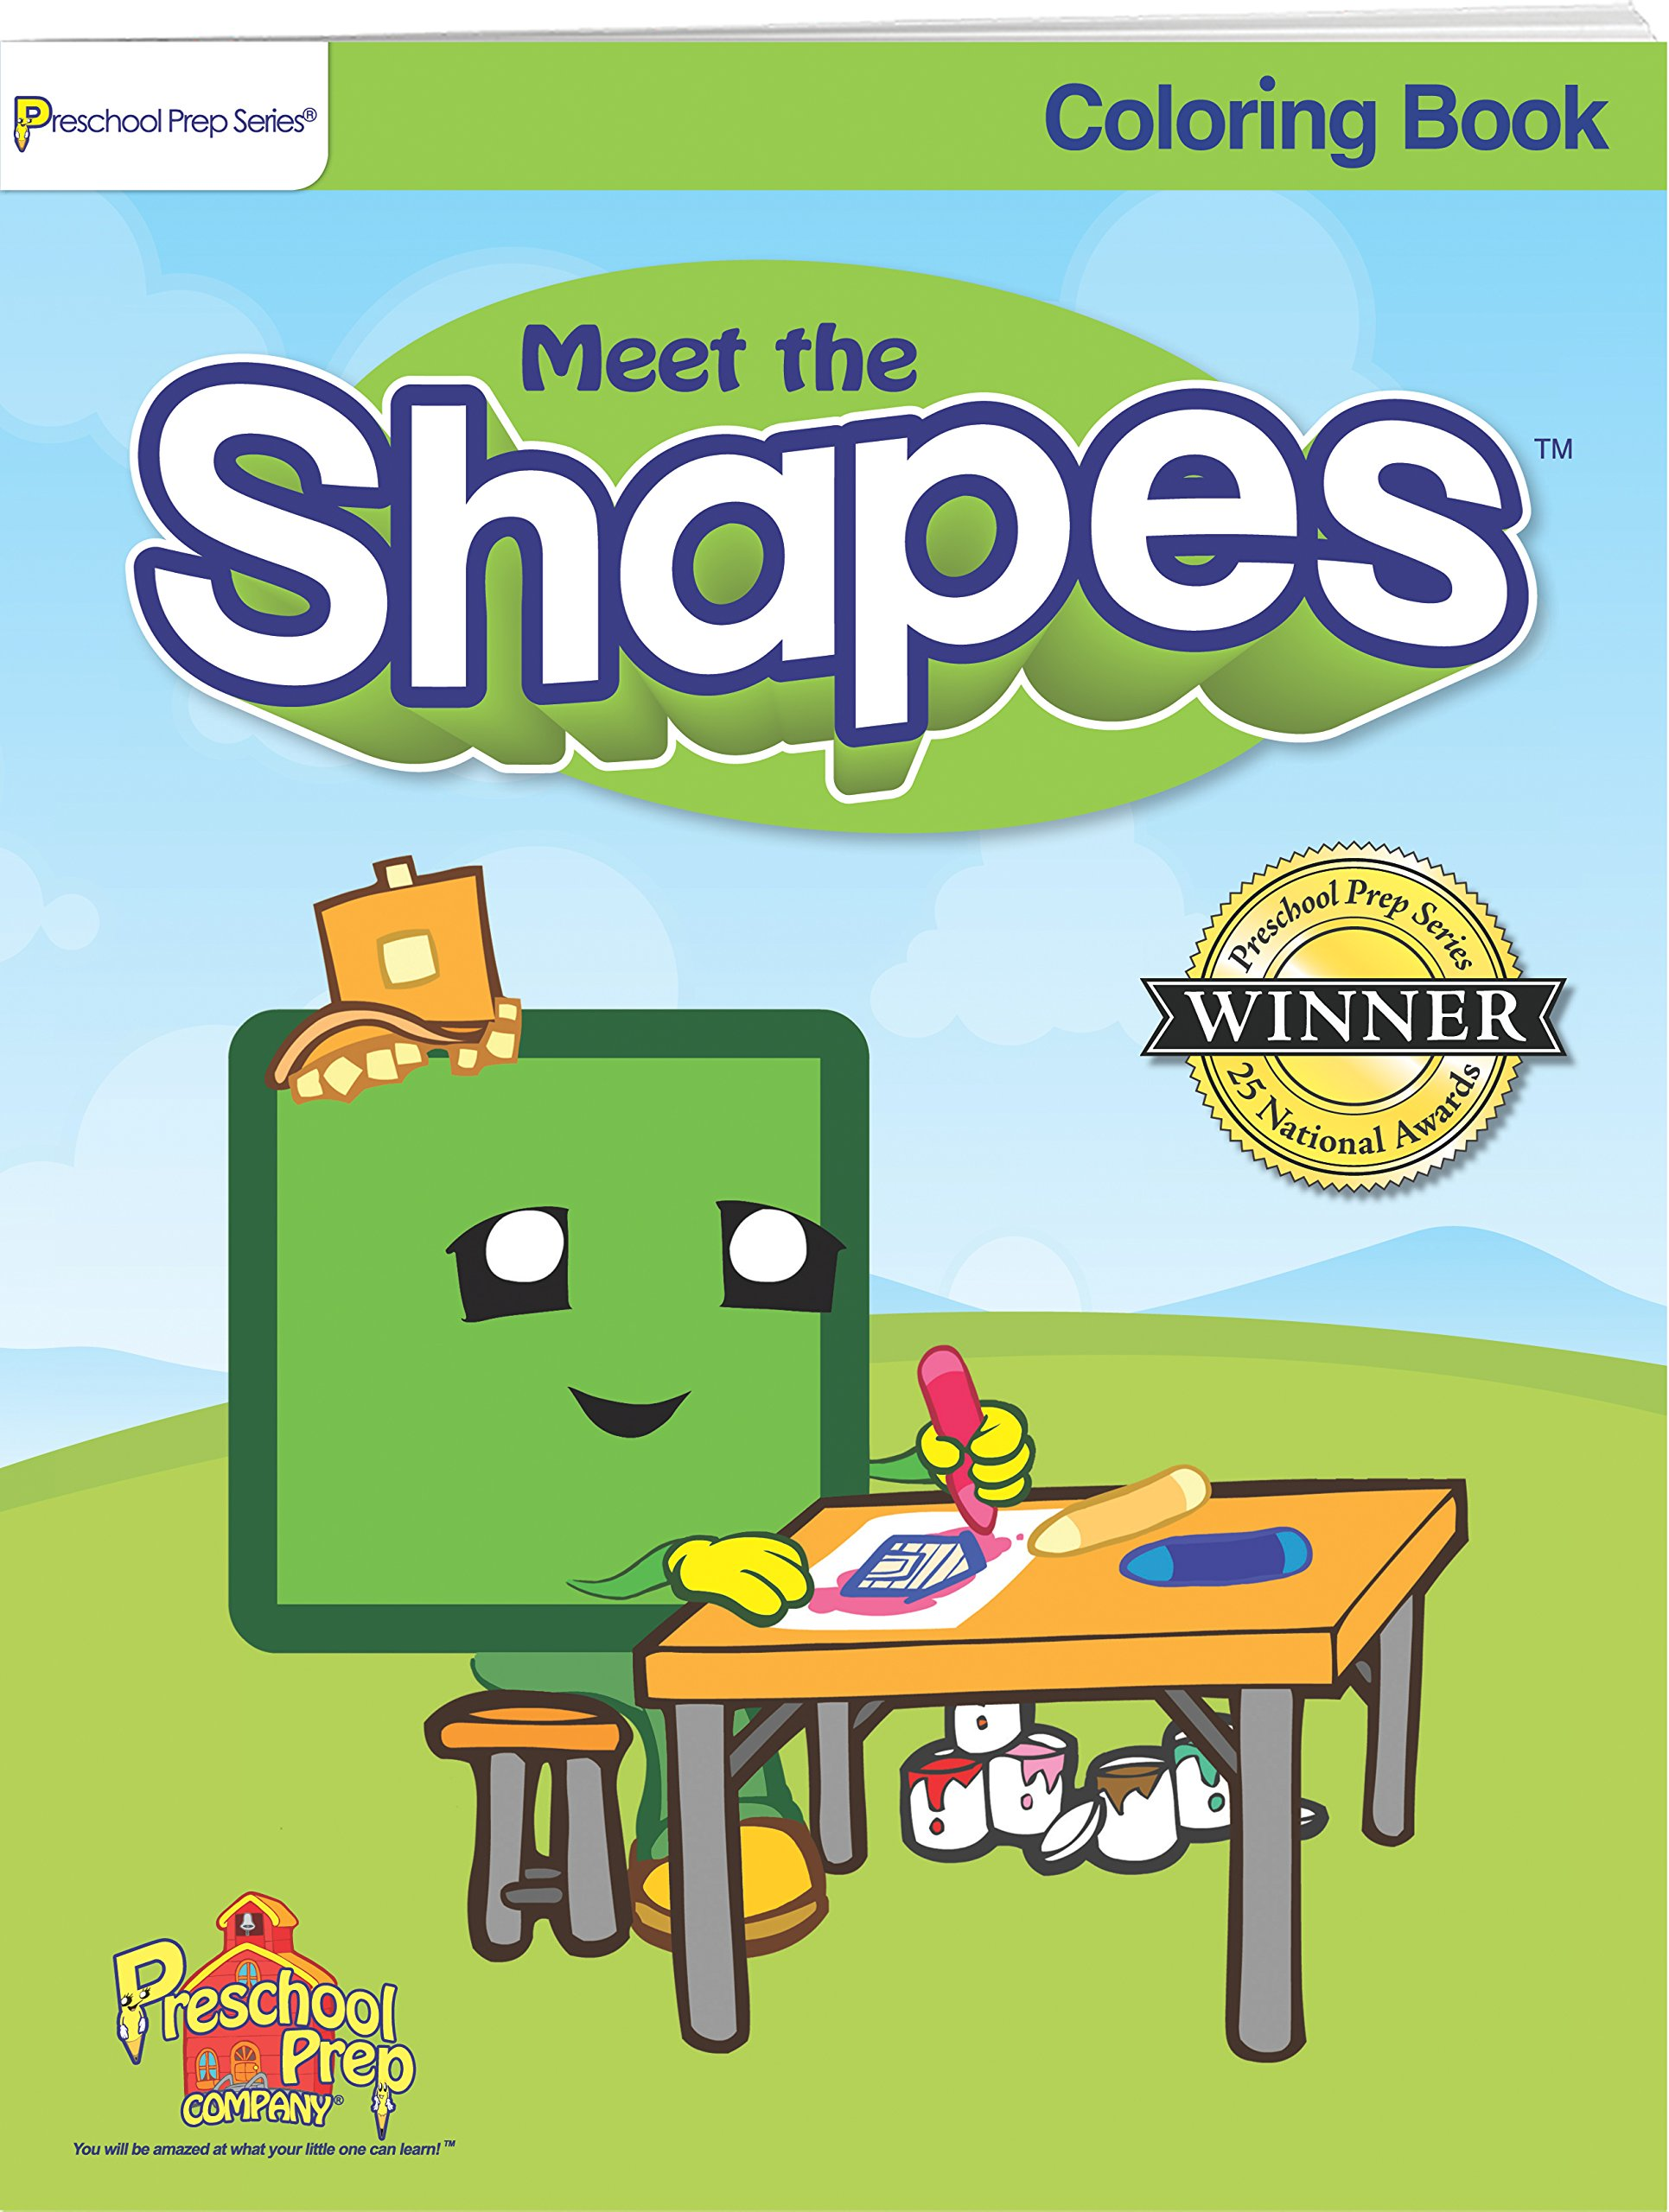 Meet the Shapes - Coloring Book: Kathy Oxley: 0184582000341: Amazon ...